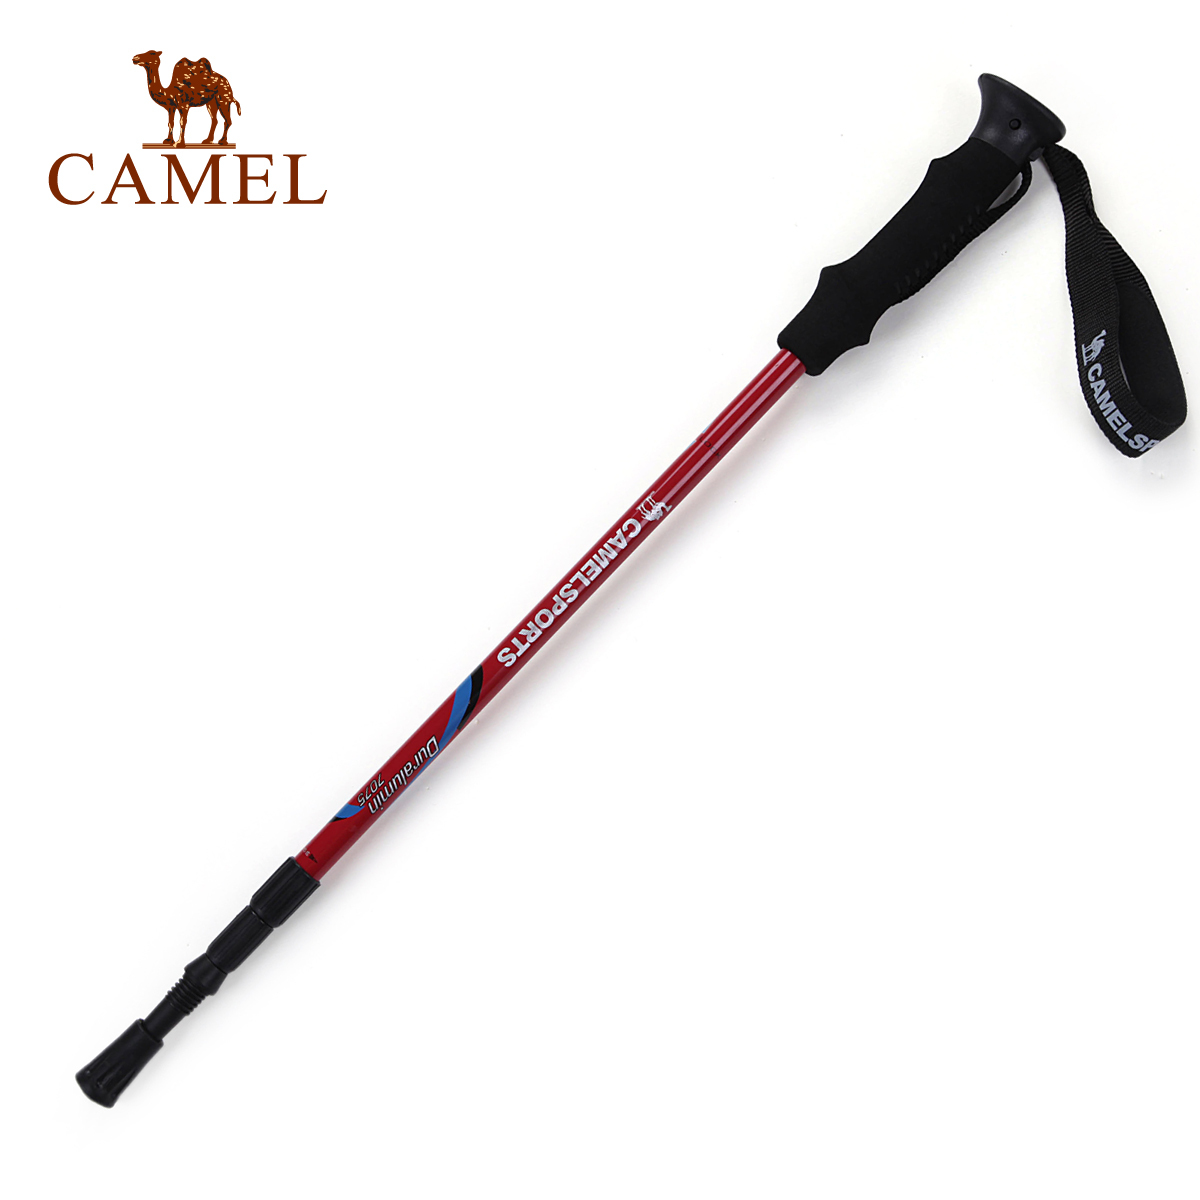 Camel outdoor trekking poles consists of a genuine straight-grip ultra light aluminum alloy hiking special cane 2SA7311